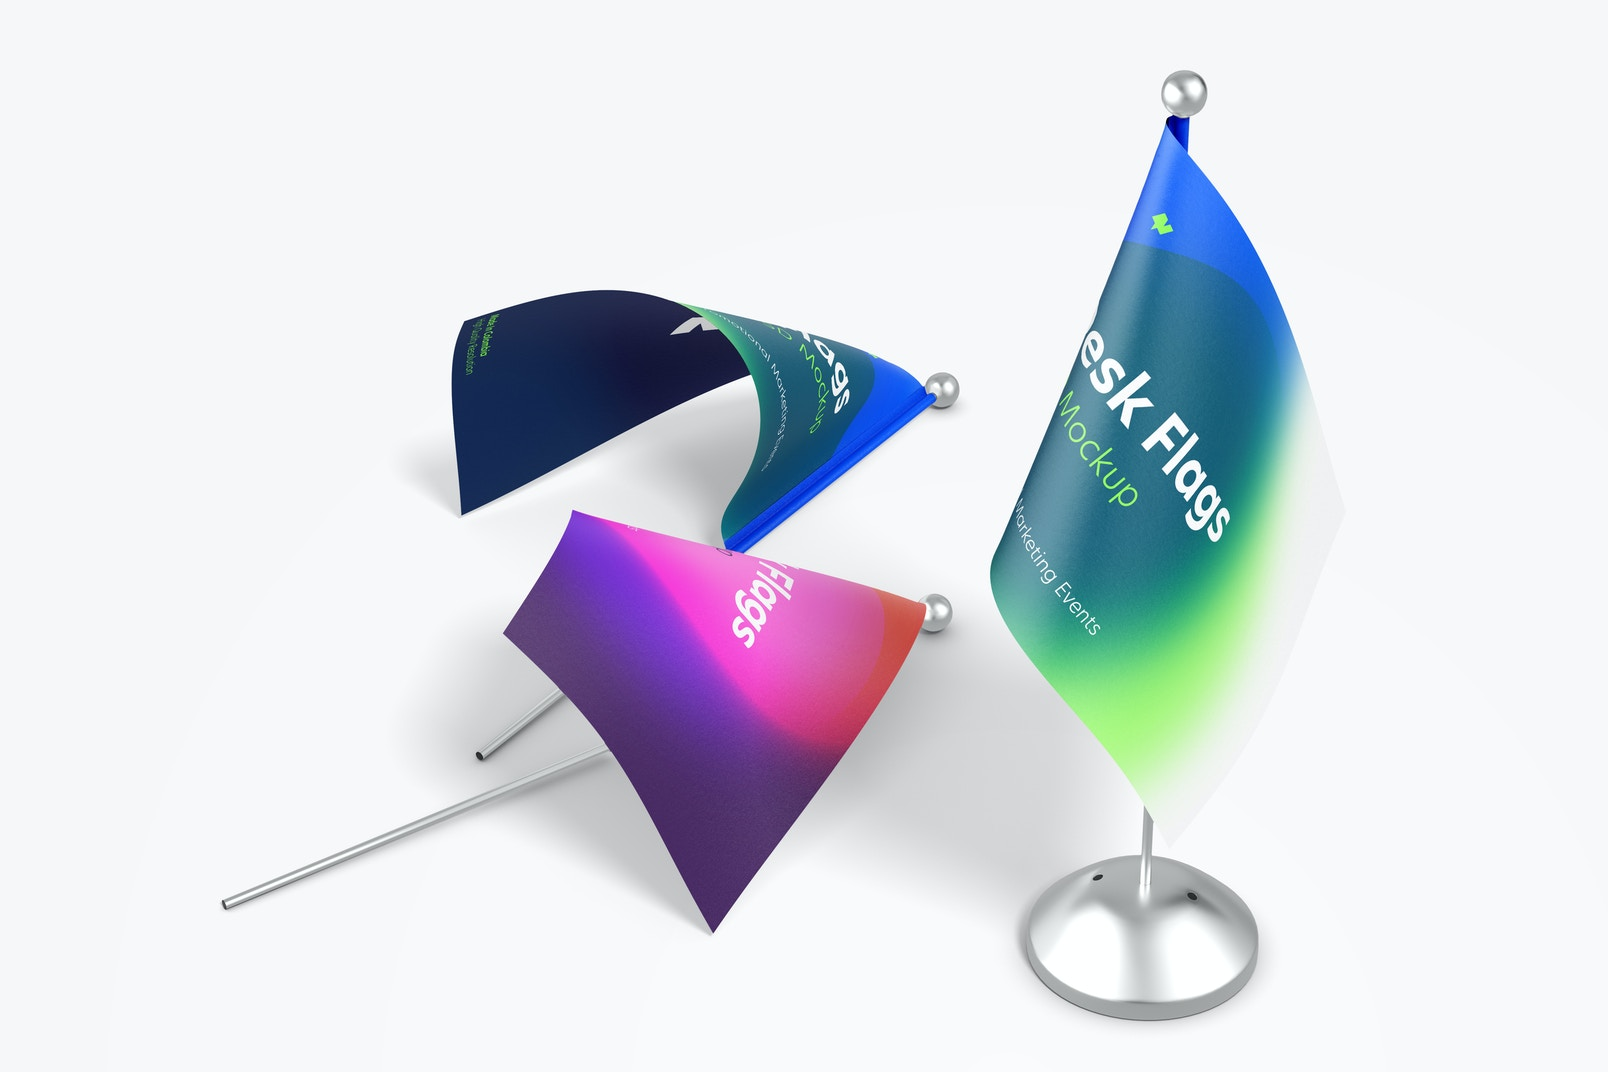 Desk Flags Mockup, Standing and Dropped